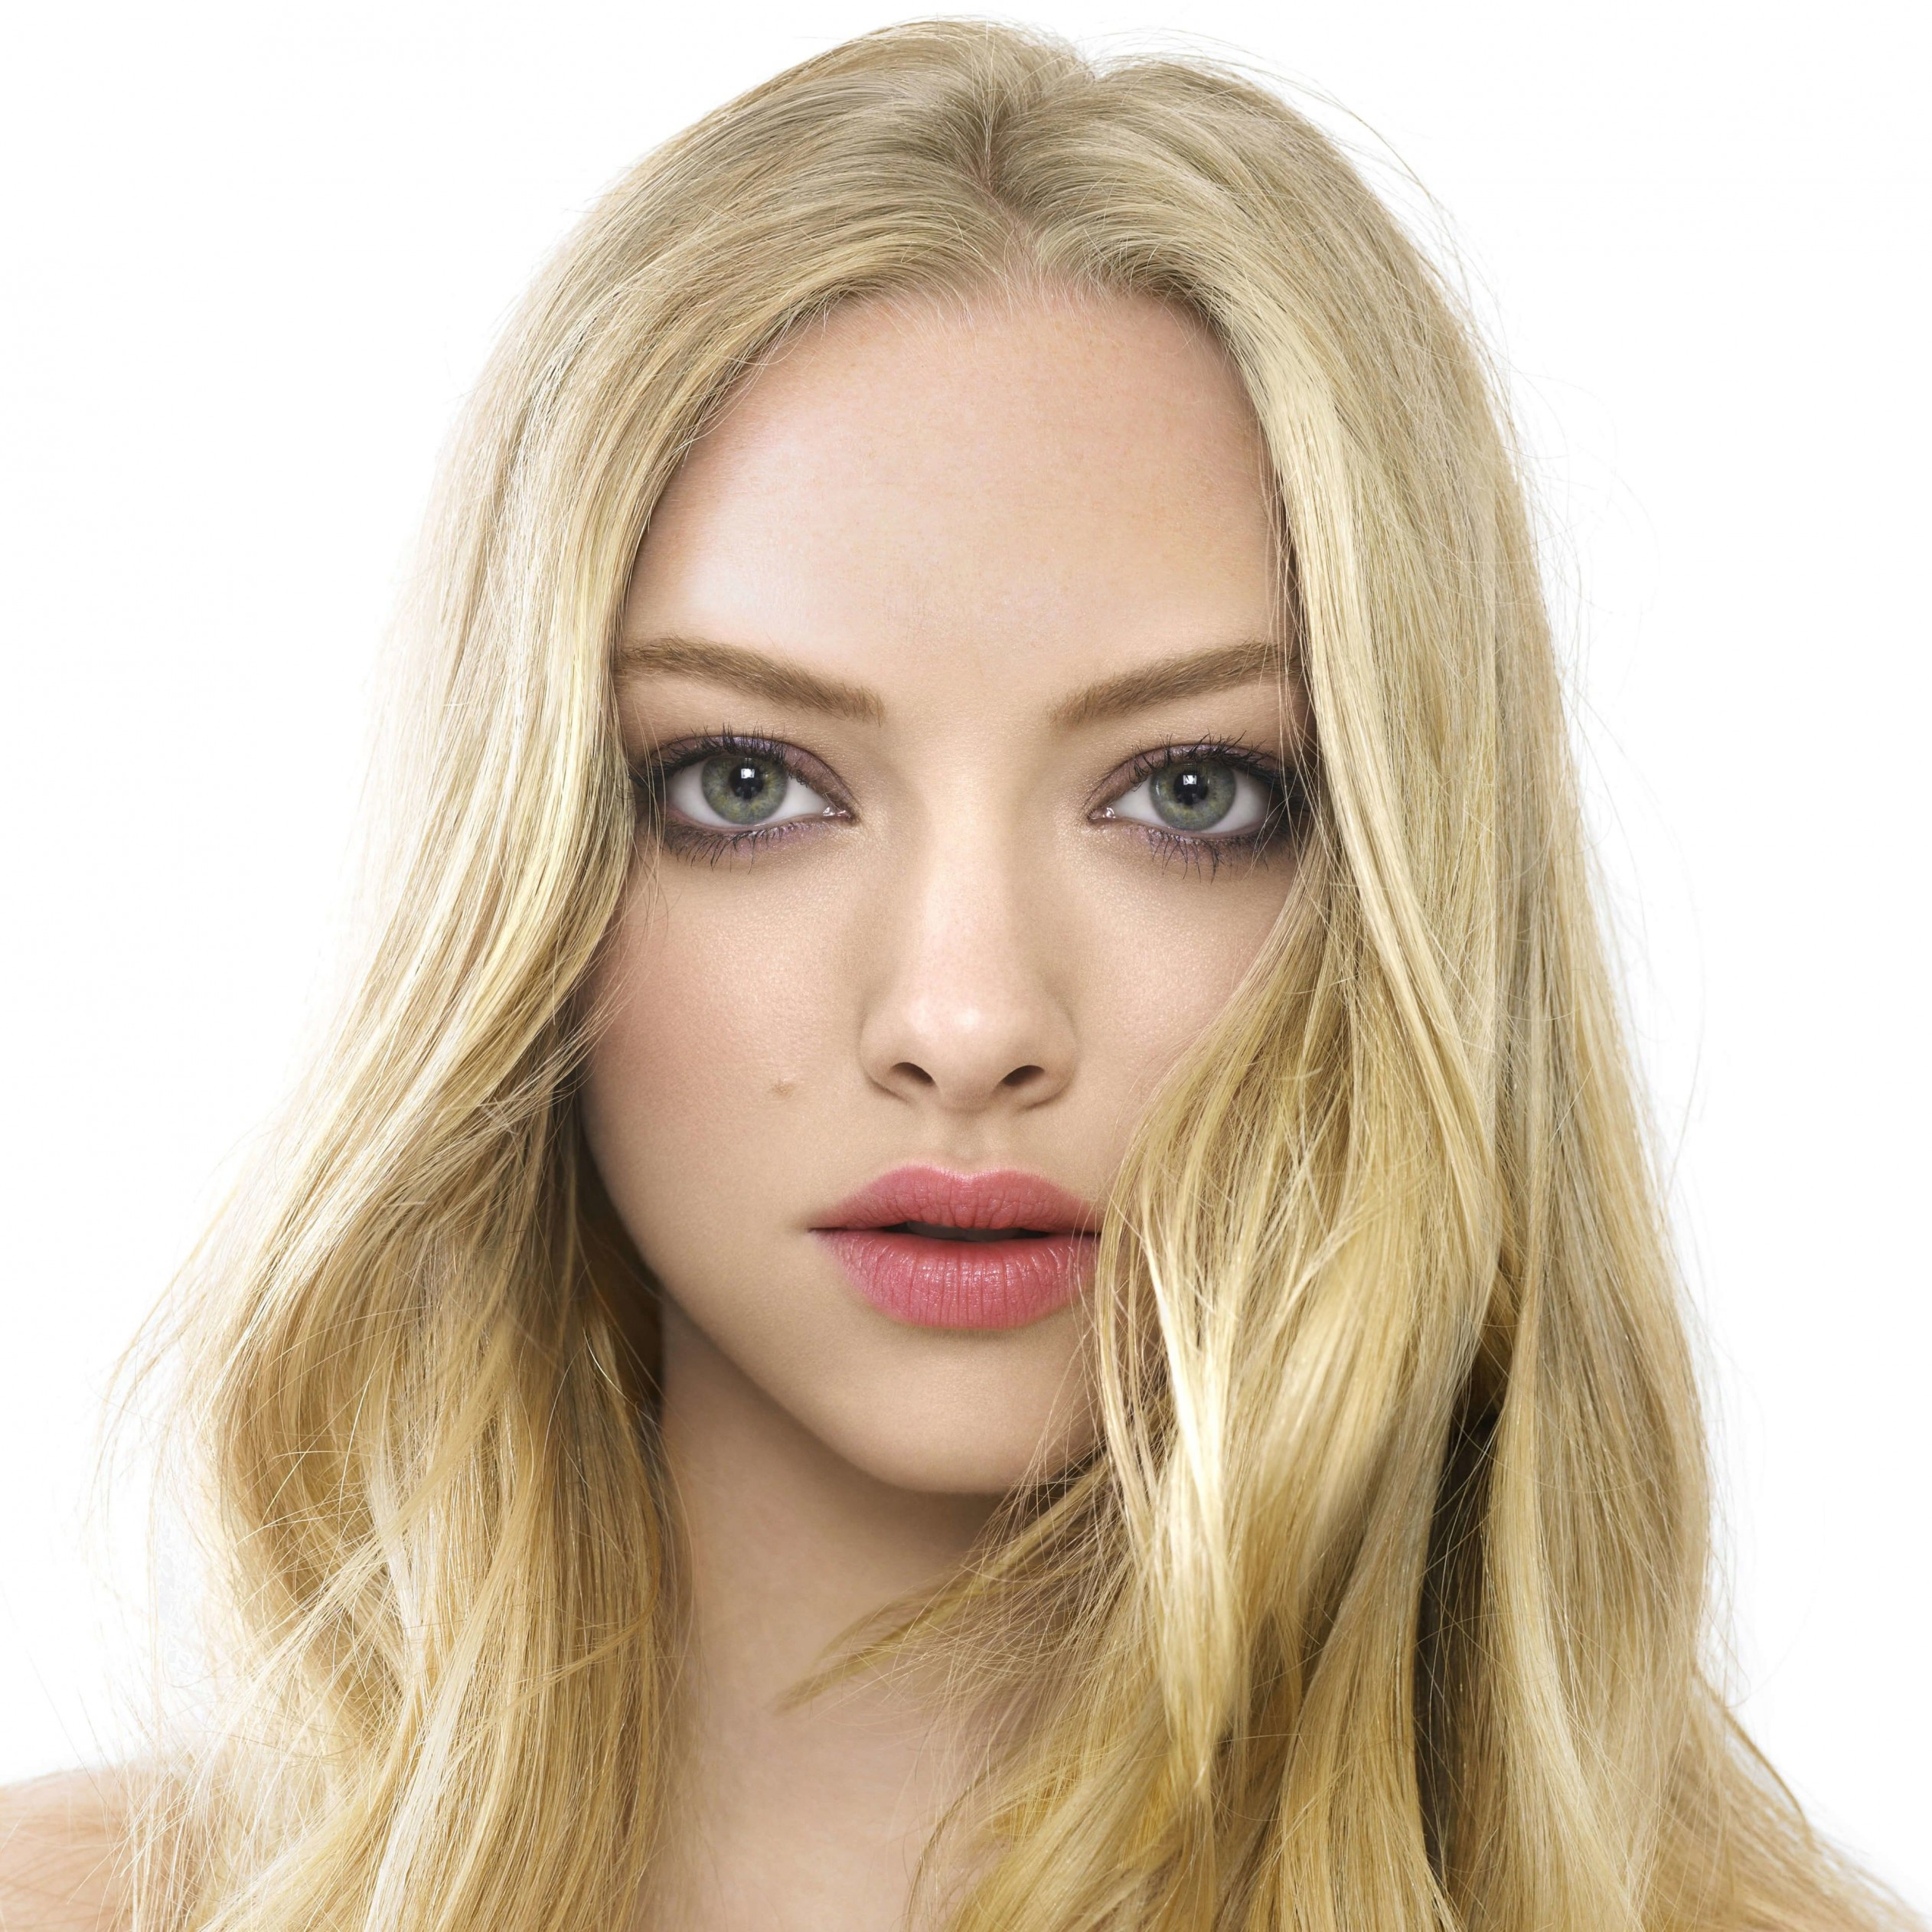 Amanda Seyfried Portrait Wallpaper for Apple iPad 3